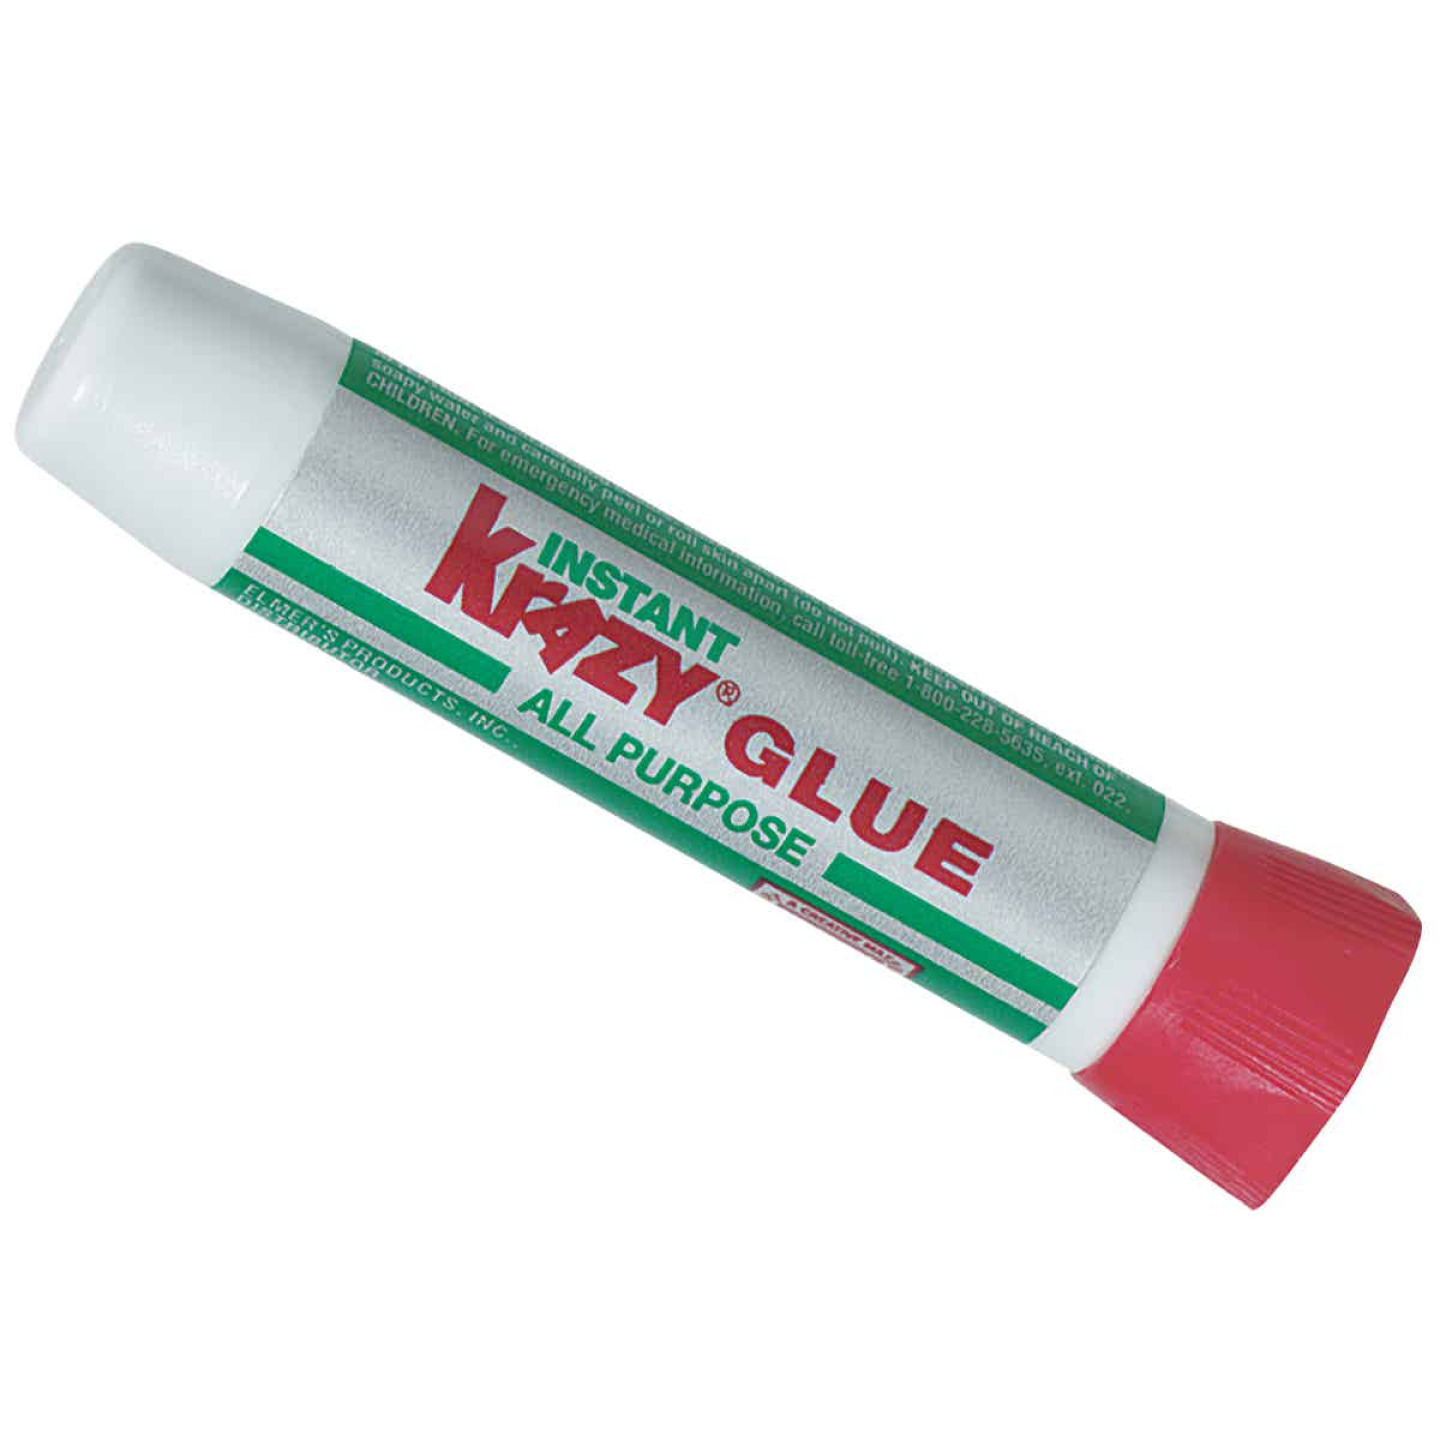 Krazy Glue 0.07 Oz. Liquid All-Purpose Super Glue Image 1